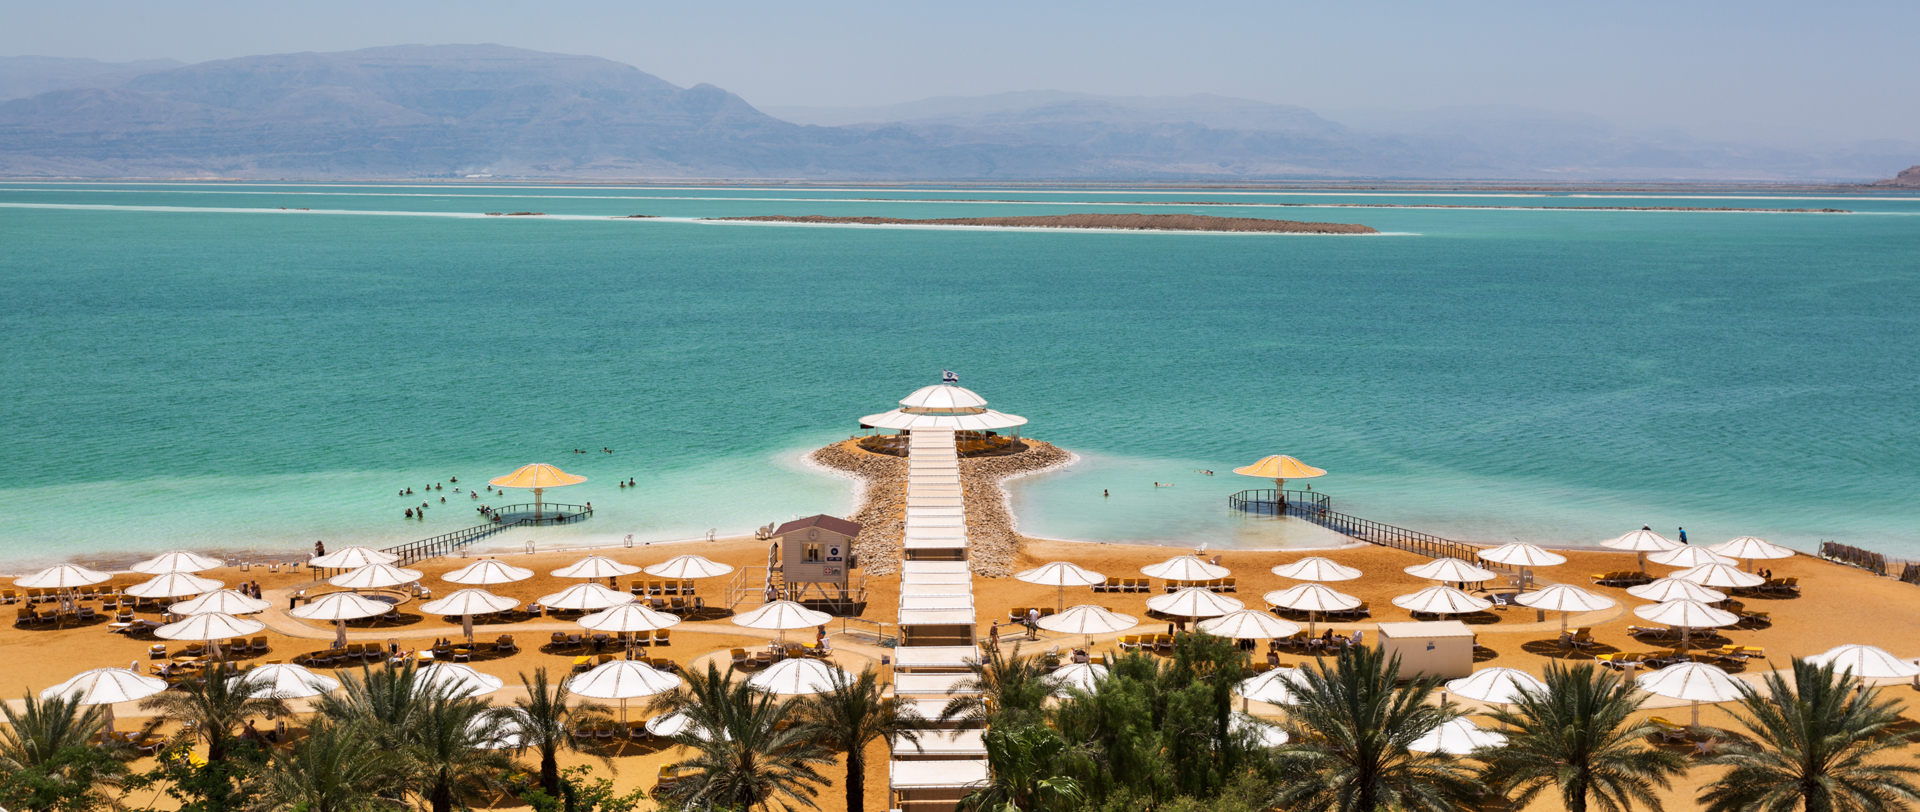 Lot Hotel - The Dead Sea